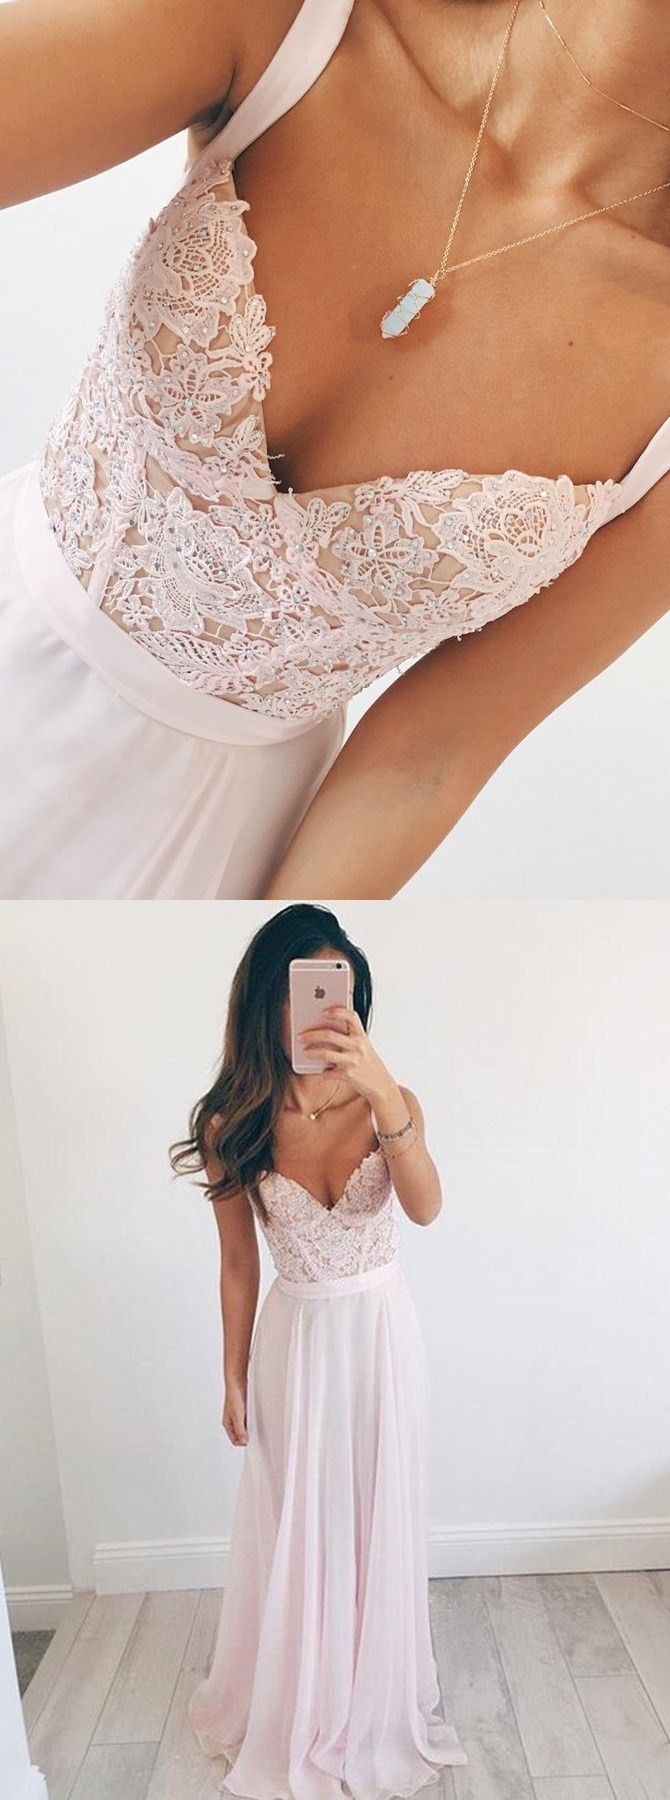 2017 long prom dresses,simple lace long prom dresses, deep v-neck prom party dresses, cheap lace party dresses, white prom dresses, fashion dresses, vestidos